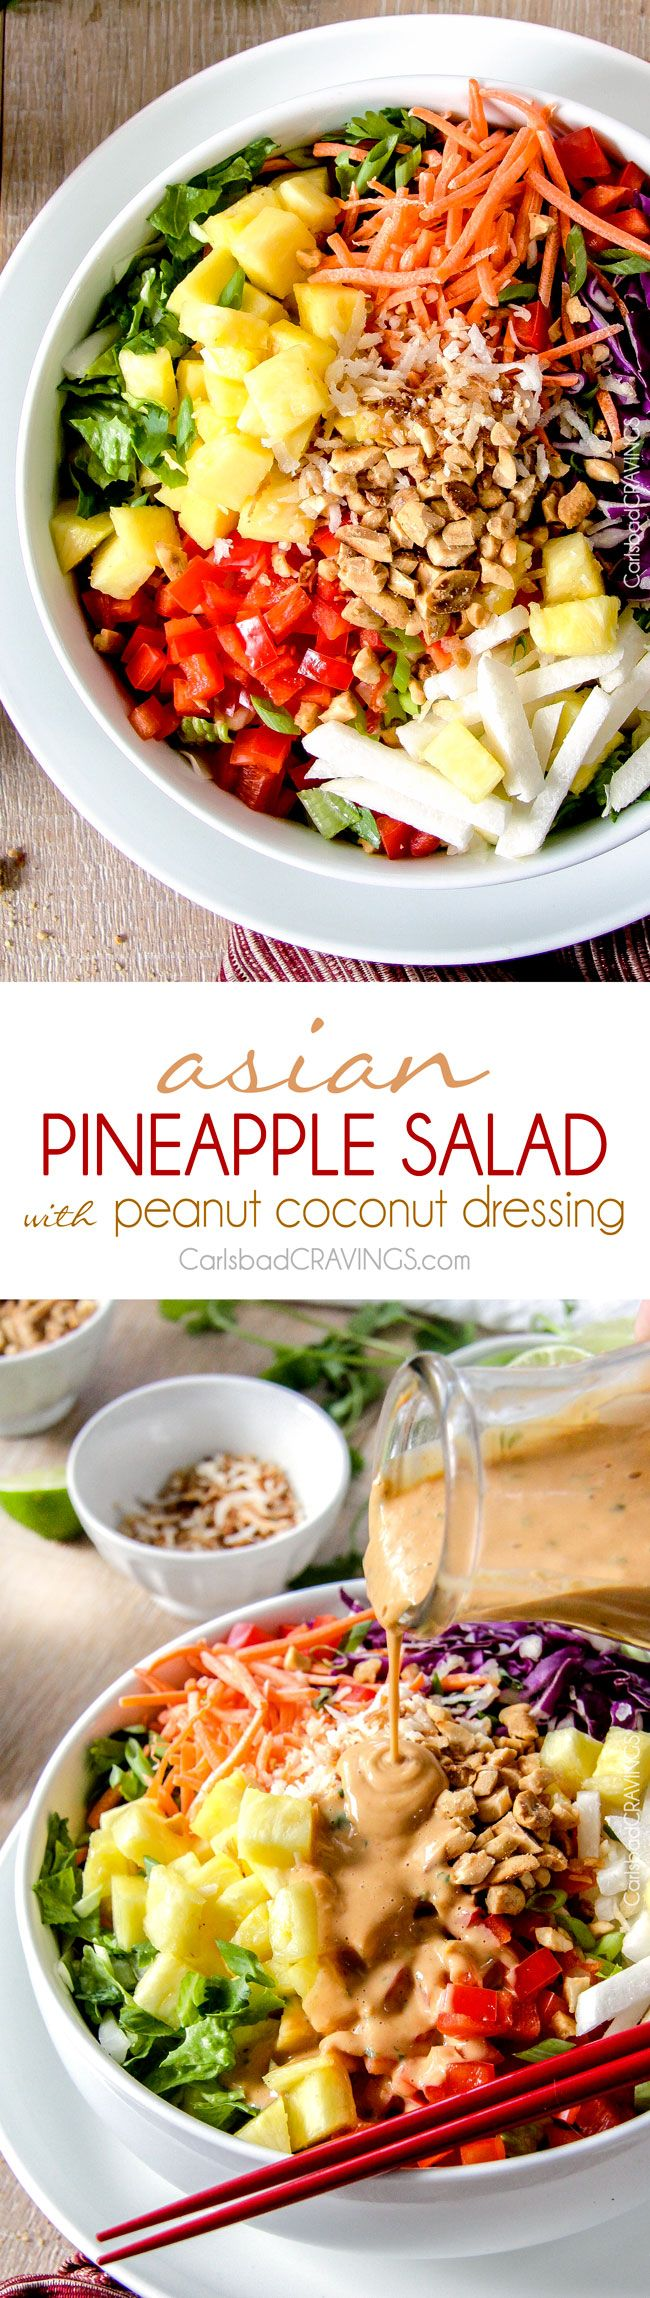 Asian Pineapple Salad with Coconut Peanut Dressing is a salad lover's dream! packed with refreshing pineapple and crunchy peanuts, peppers, carrots, jicama and coconut all doused with the most AMAZING silky Coconut Peanut Dressing that I could drink by itself! | @andwhatelse